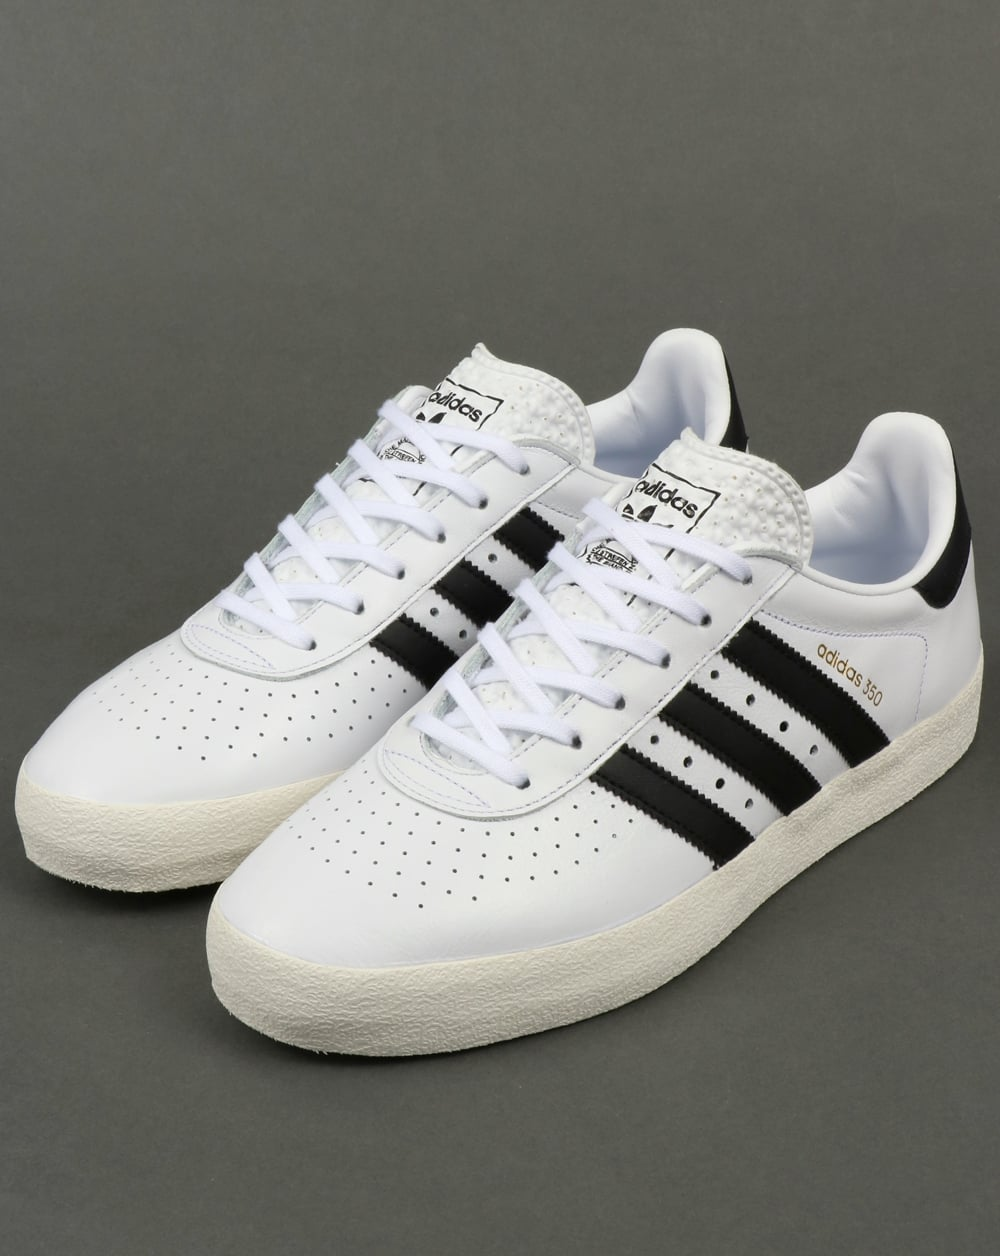 cheaper 88c88 d0ff9 Adidas 350 Trainers White/Black/Off White